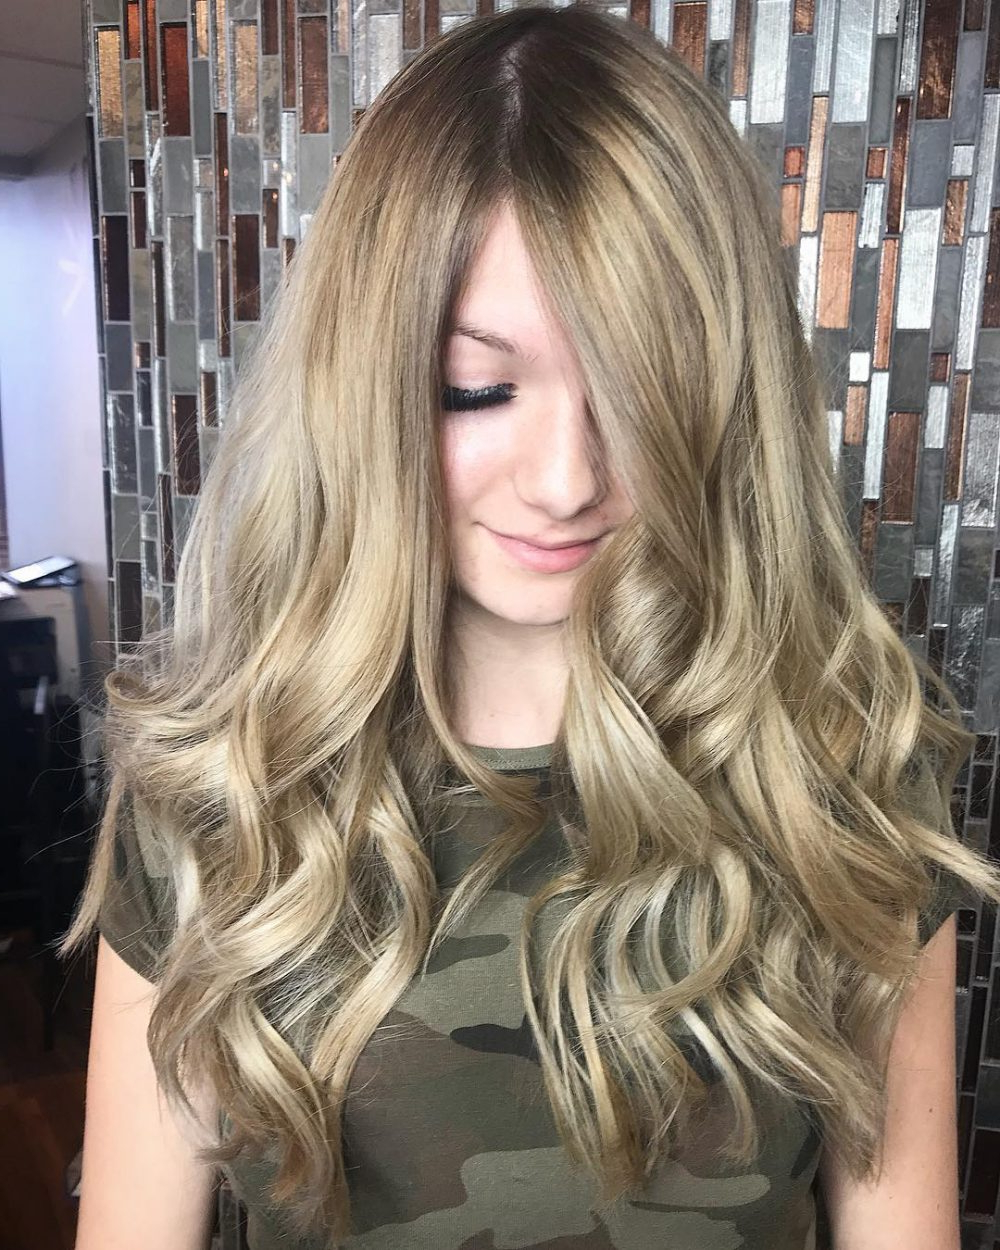 2019 Shiny Tousled Curls Hairstyles With Regard To 24 Long Wavy Hair Ideas That Are Freaking Hot In 2019 (Gallery 4 of 20)